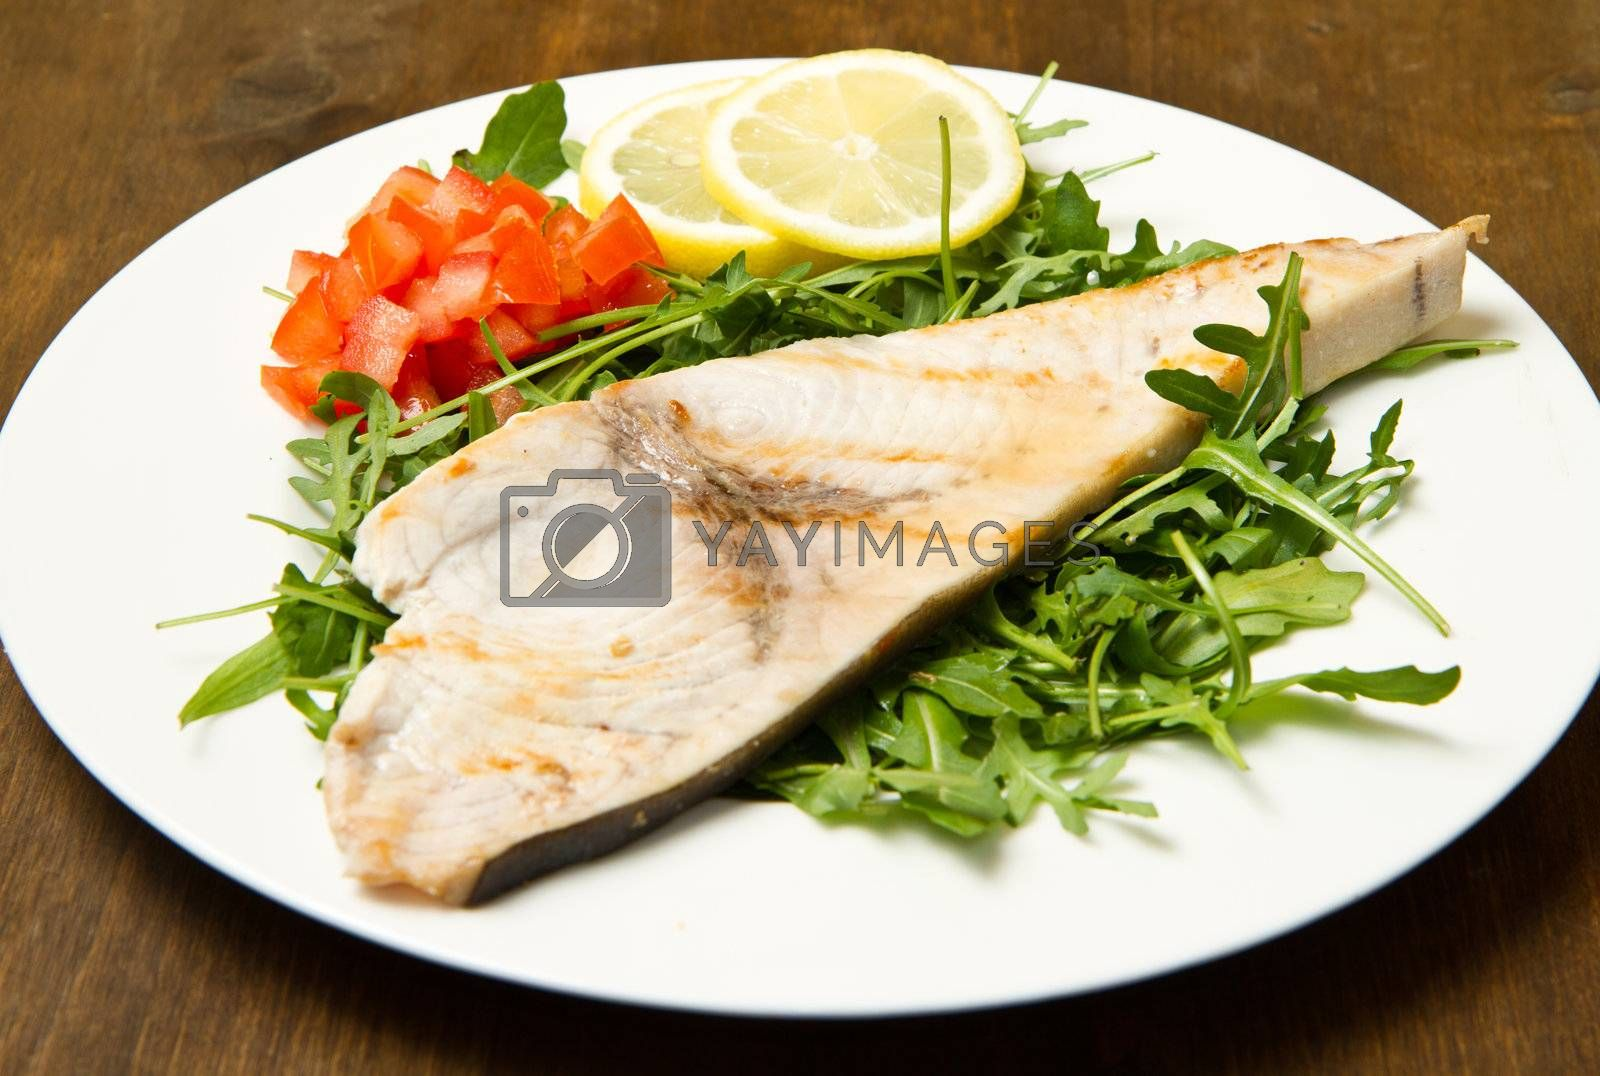 roasted swordfish with lemon, salad and tomatoes on wooden background